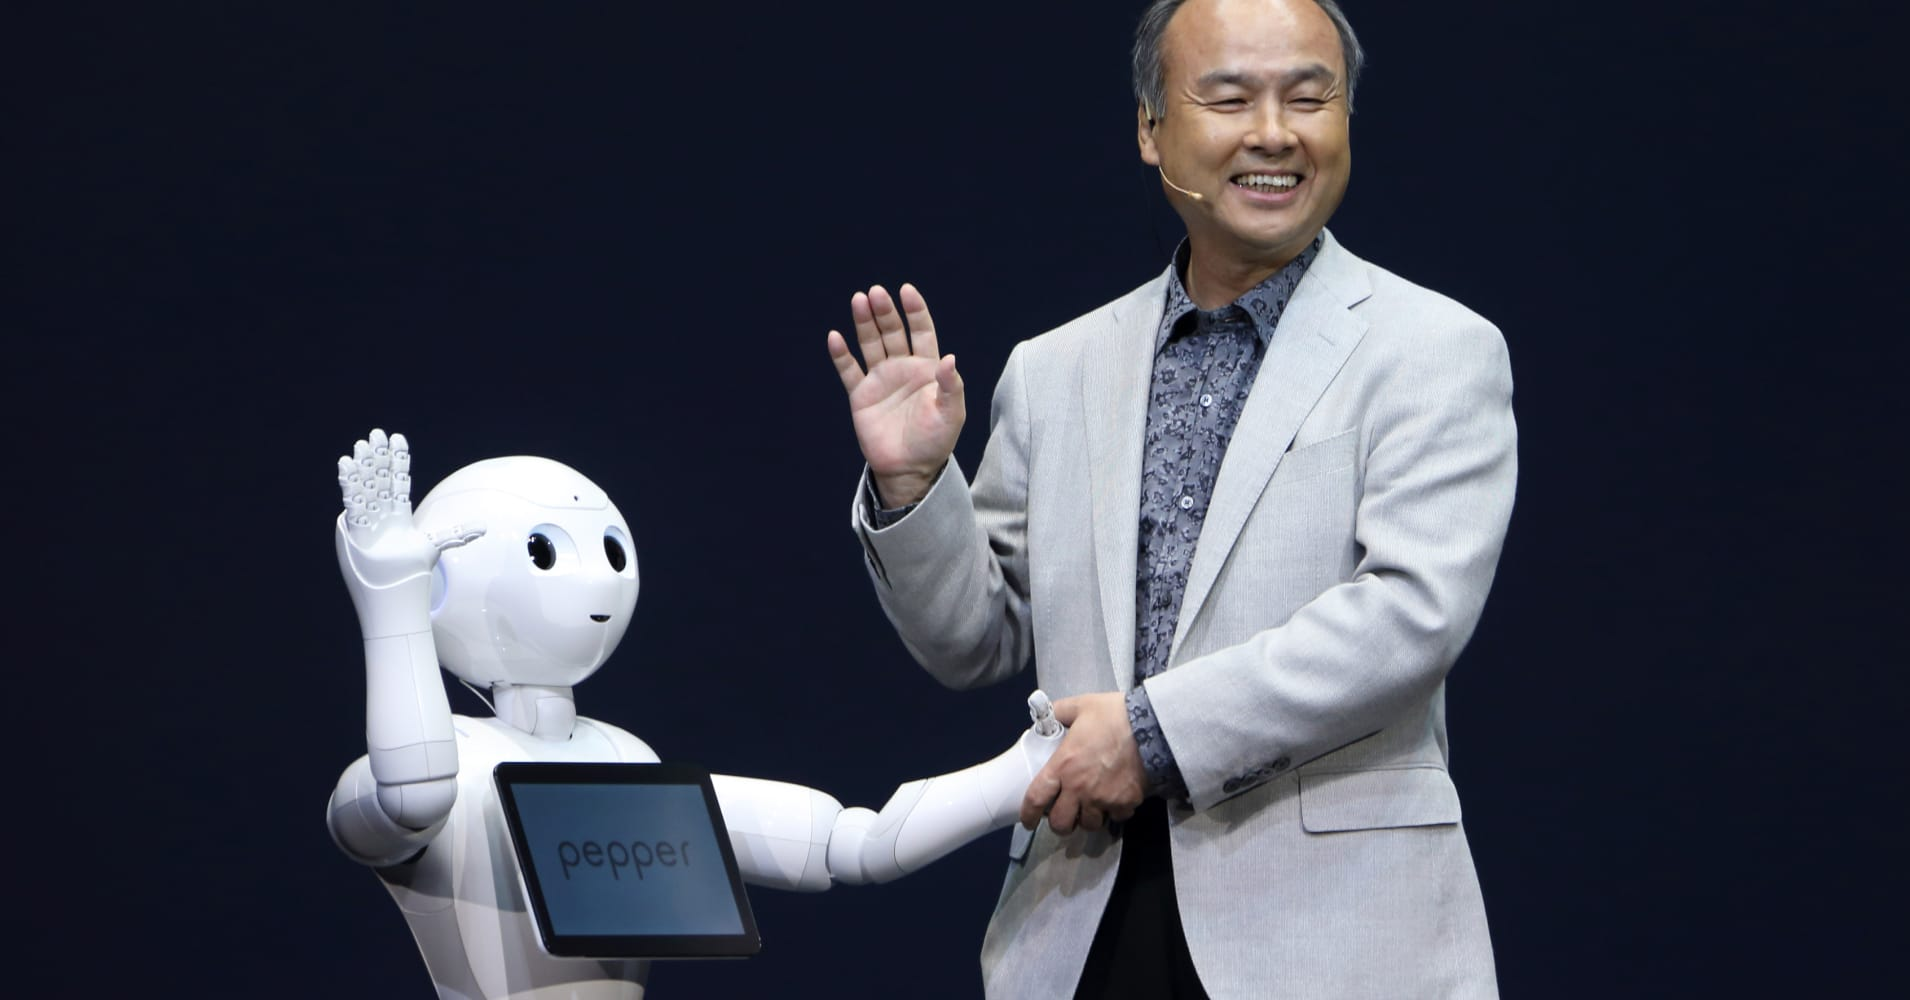 Billionaire Masayoshi Son, chairman and chief executive officer of SoftBank Corp., shakes hands with a human-like robot called Pepper, developed by the company's Aldebran Robotics unit, during a news conference in Urayasu, Chiba Prefecture, Japan.